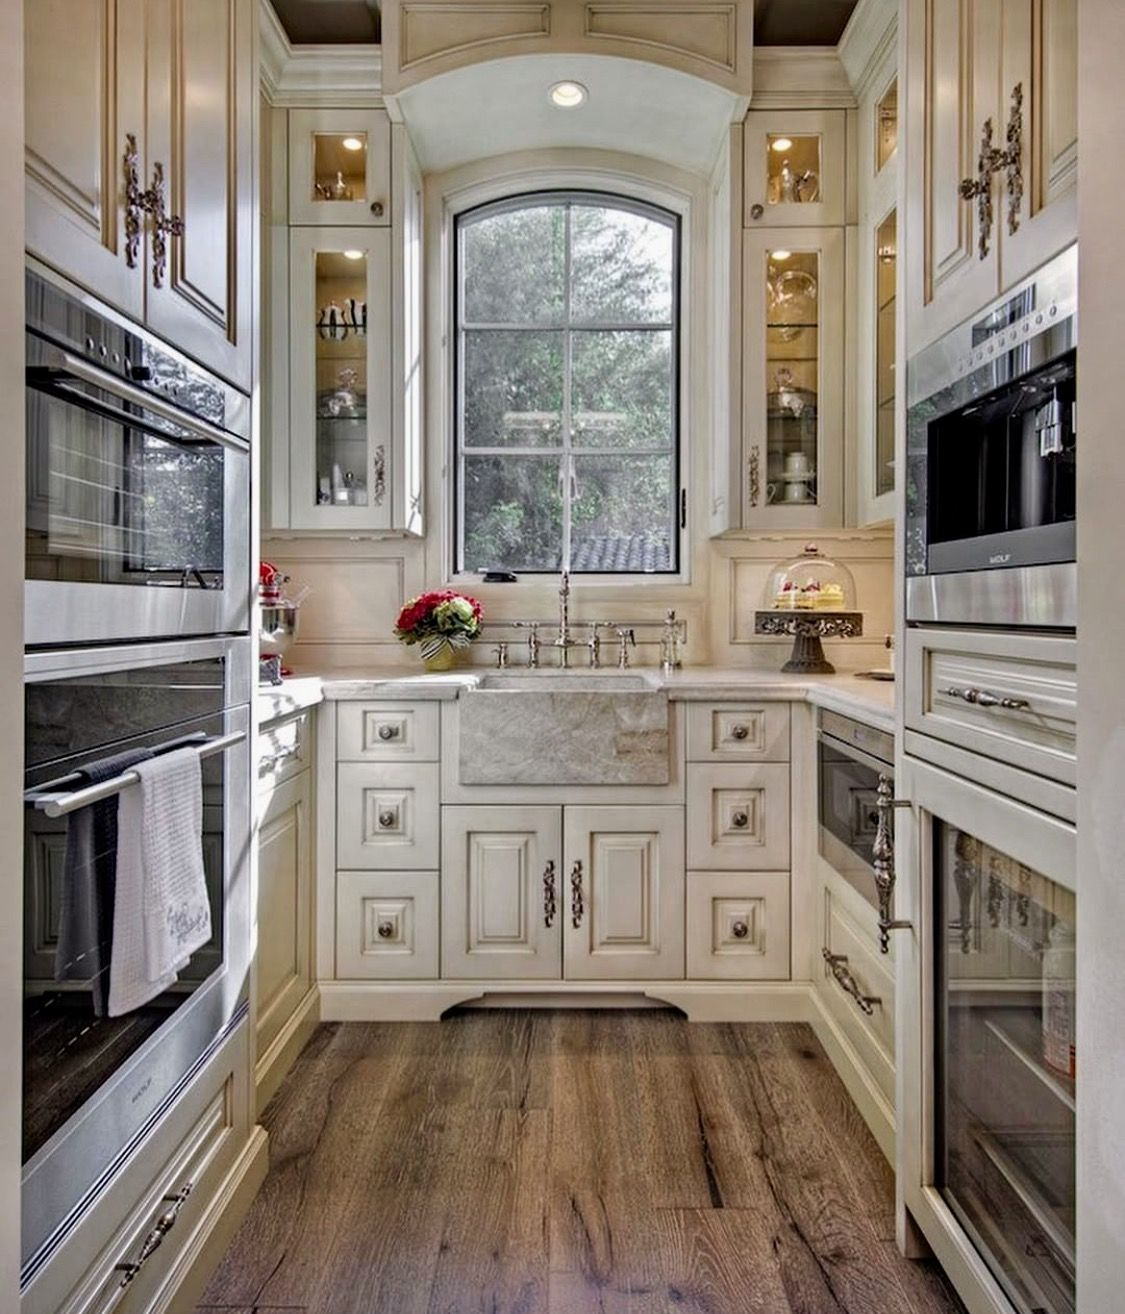 Small Traditional Galley Kitchen Ideas: Pin By Leslie Bannister On Lake House